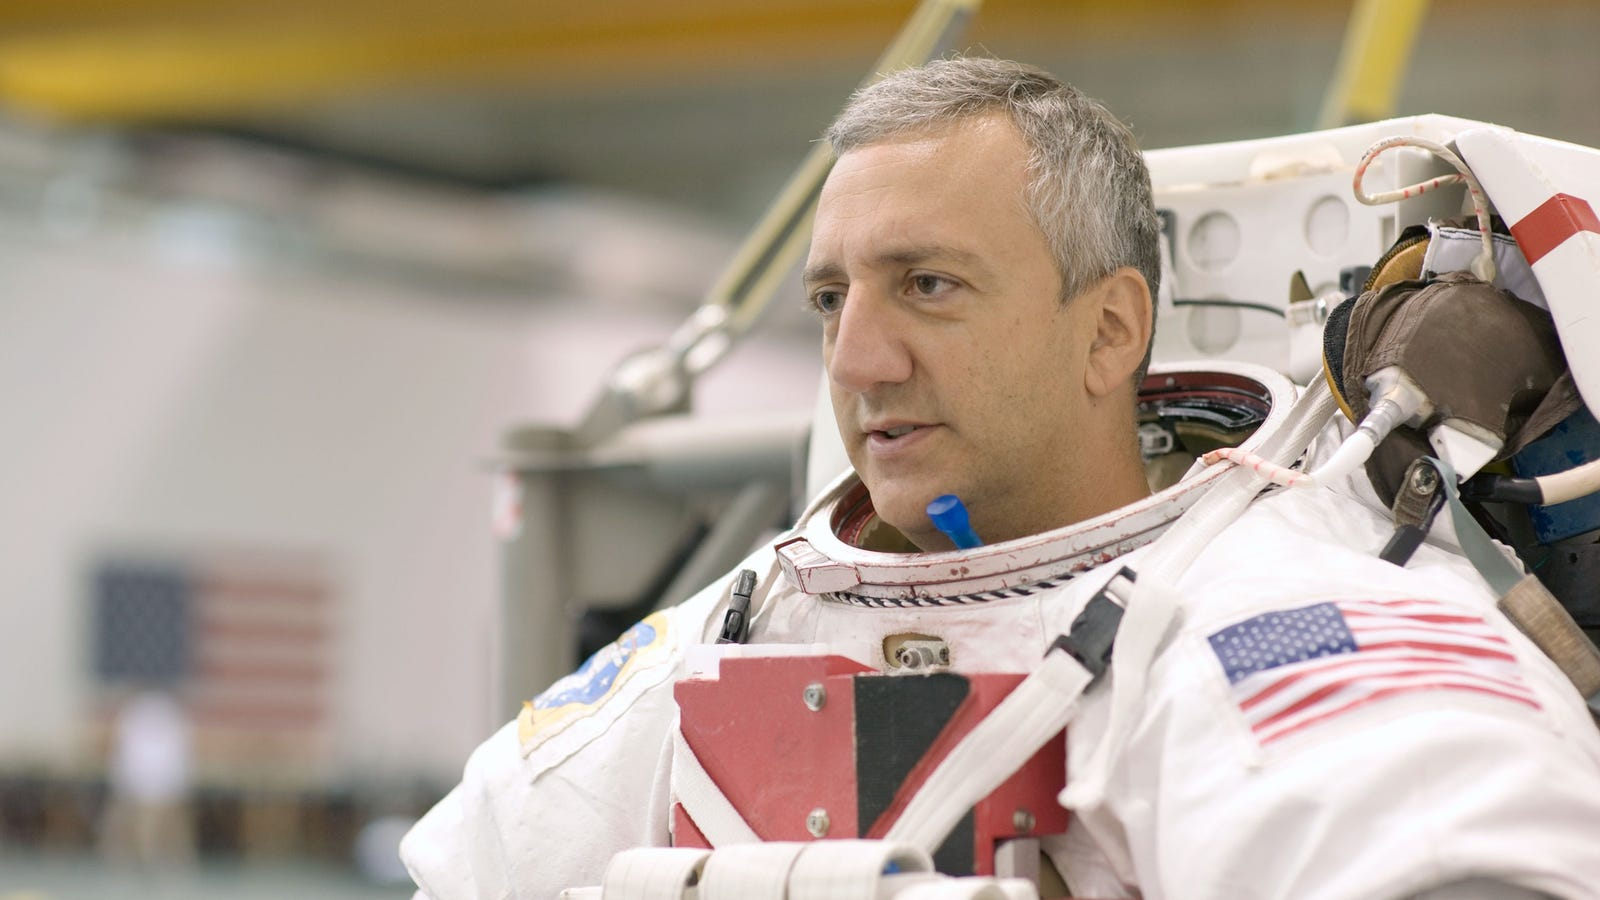 We Chatted With an Astronaut About Showering, Farting, and